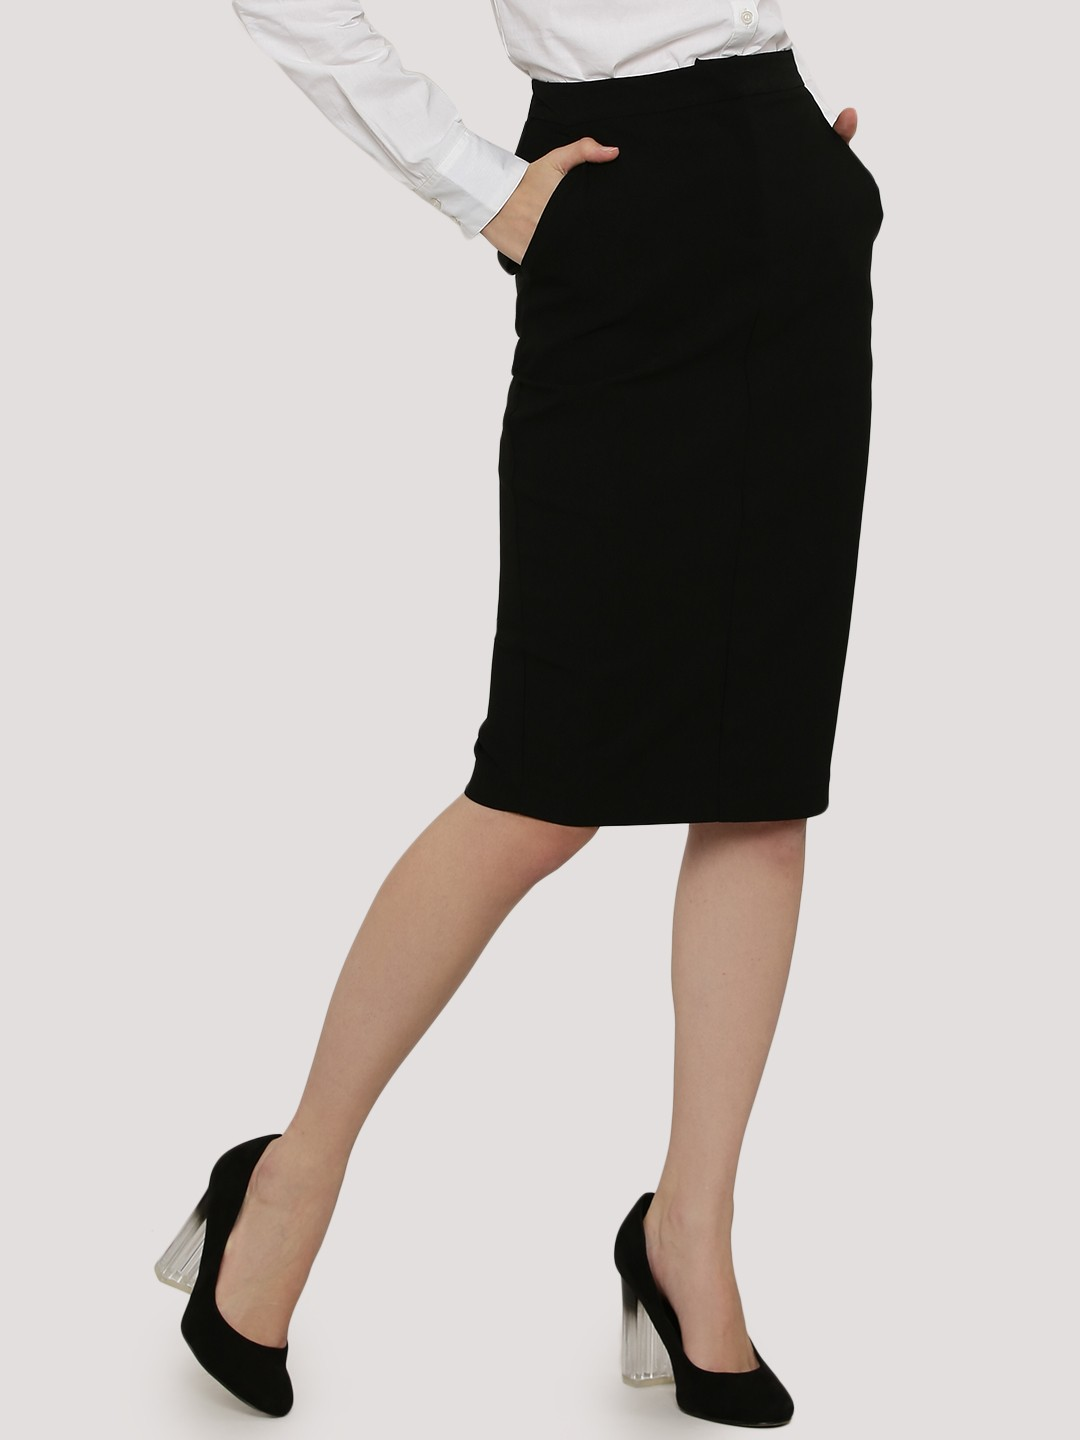 Formal Skirts - Buy Formal / Work Skirts for Women Online in India